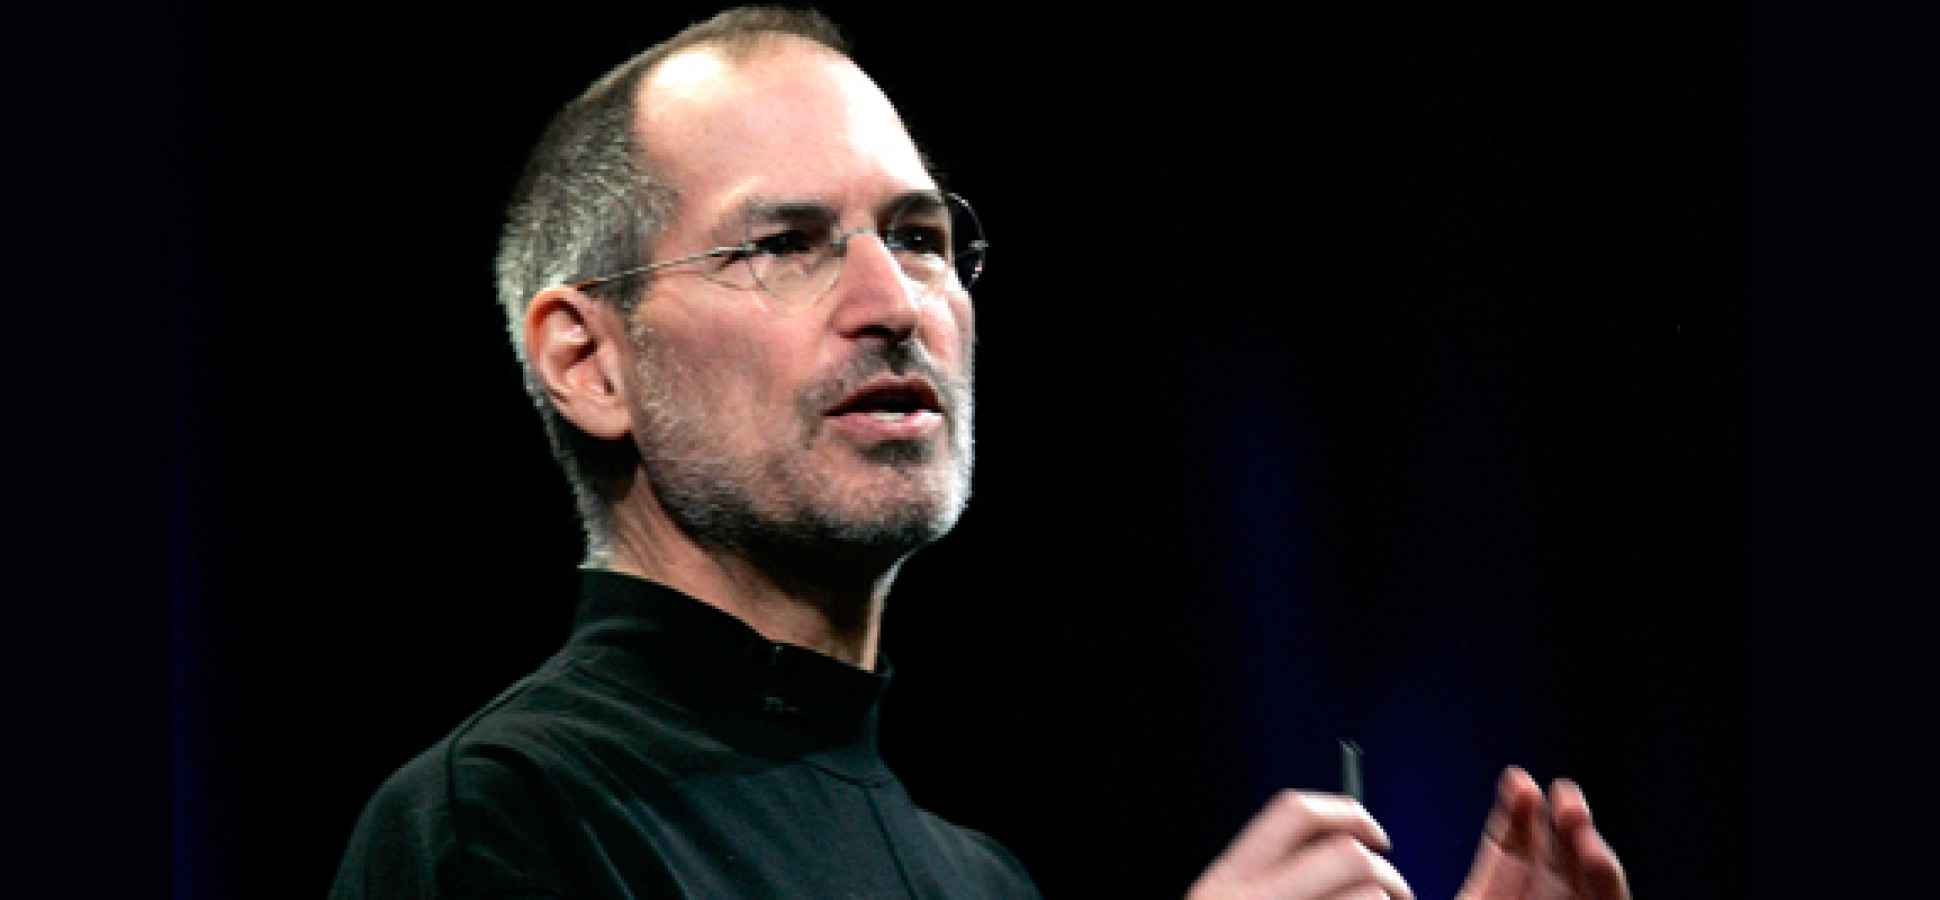 steve jobs walter isaacsonsteve jobs film, steve jobs speech, steve jobs quotes, steve jobs movie, steve jobs biography, steve jobs book, steve jobs wikipedia, steve jobs short biography, steve jobs young, steve jobs new balance, steve jobs apple, steve jobs house, steve jobs wife, steve jobs wallpaper, steve jobs made technology fun, steve jobs book pdf, steve jobs vs bill gates, steve jobs essay, steve jobs walter isaacson, steve jobs interesting facts